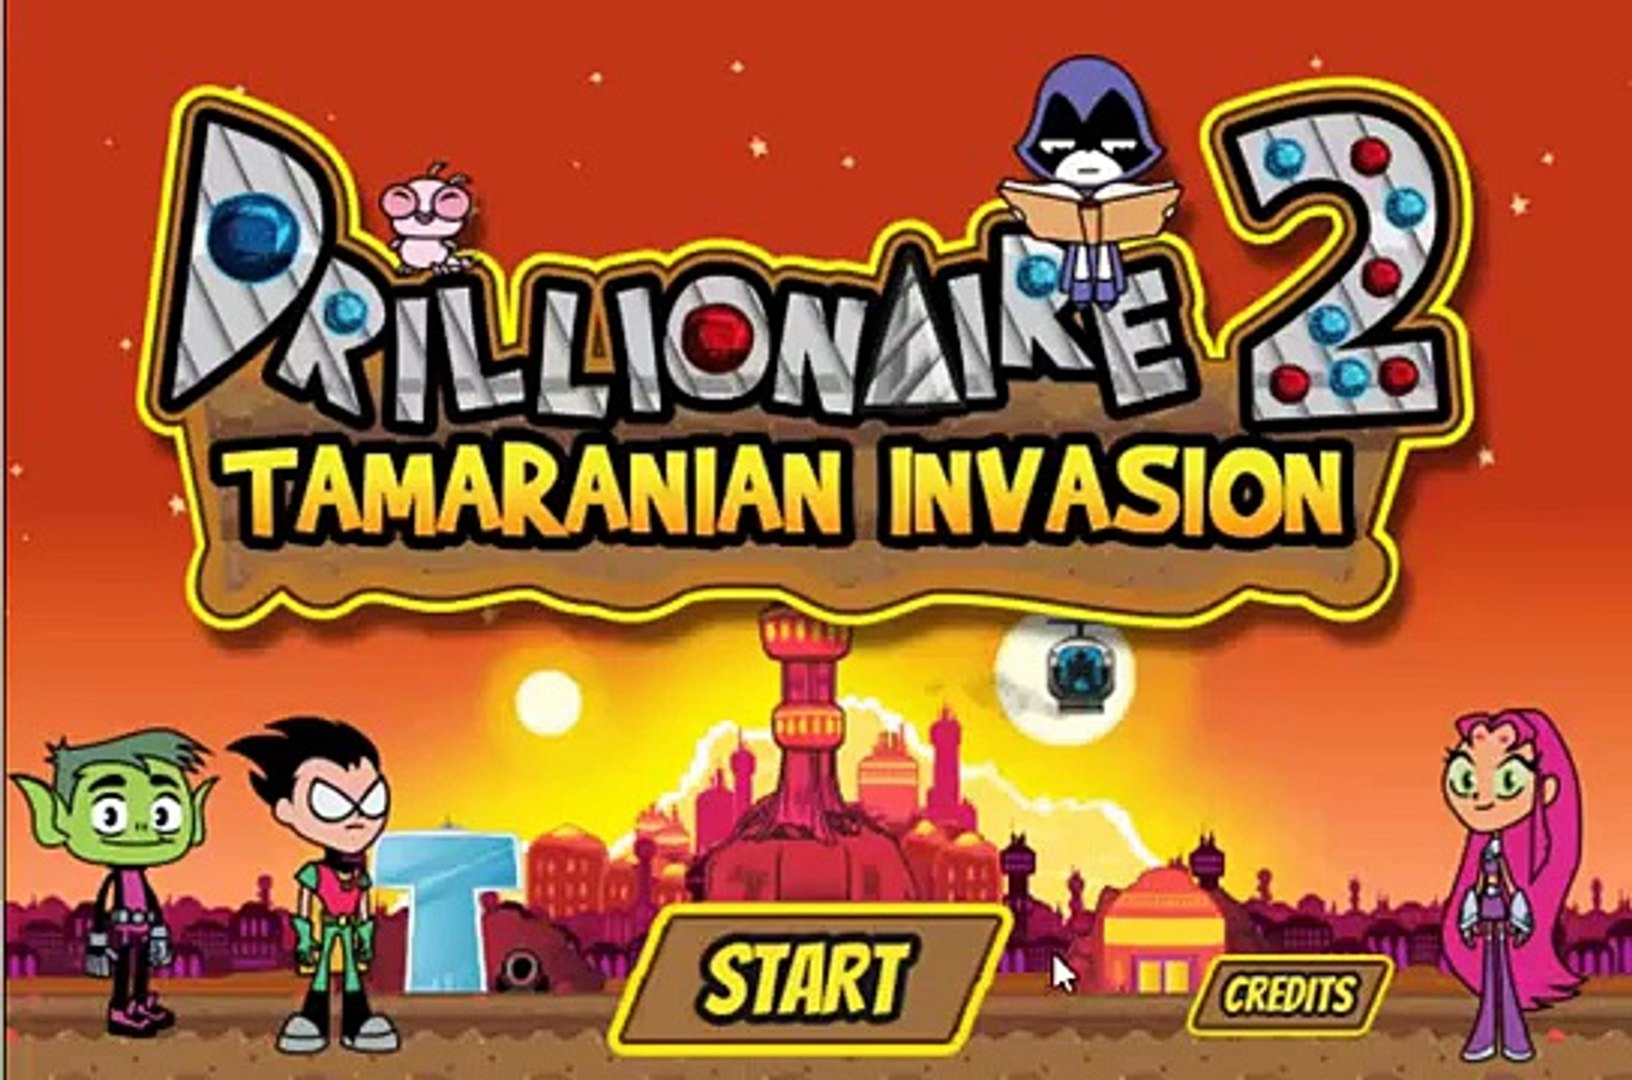 Teen Titans Go Drillionaire 2 Tamaranian Invasion Cartoon Network Games For Kids 2 Video Dailymotion